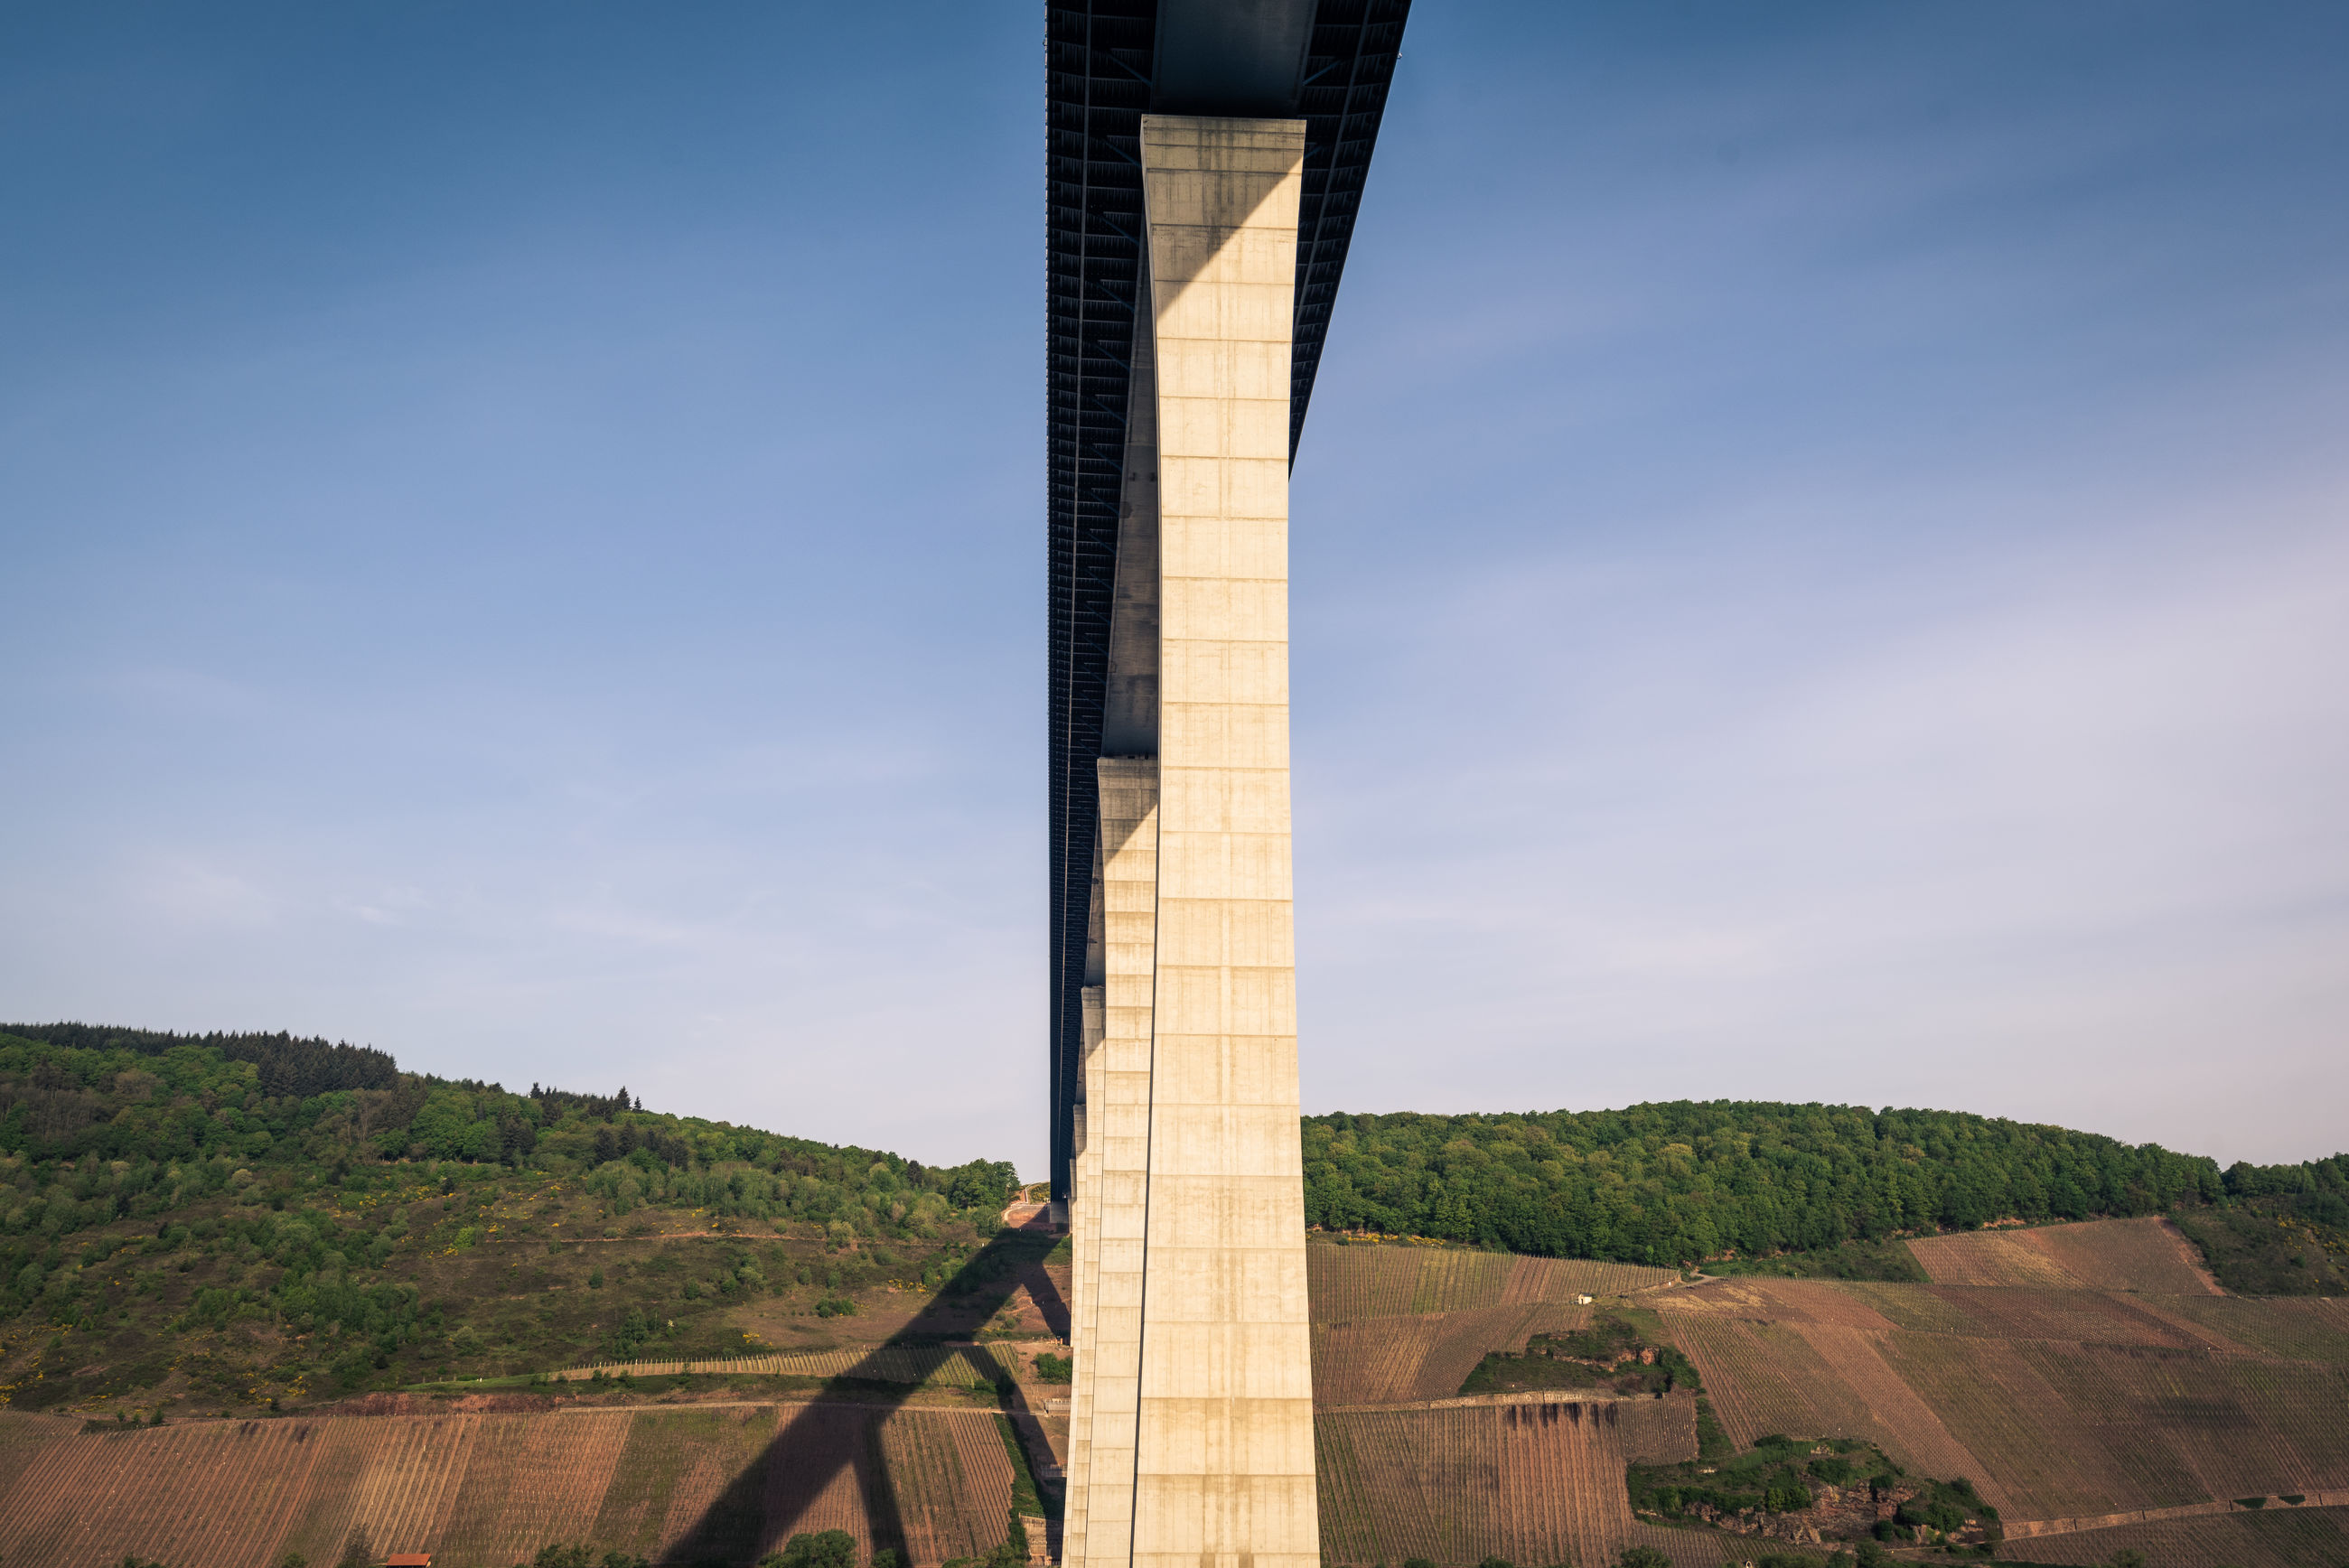 LOW ANGLE VIEW OF BRIDGE OVER LANDSCAPE AGAINST SKY